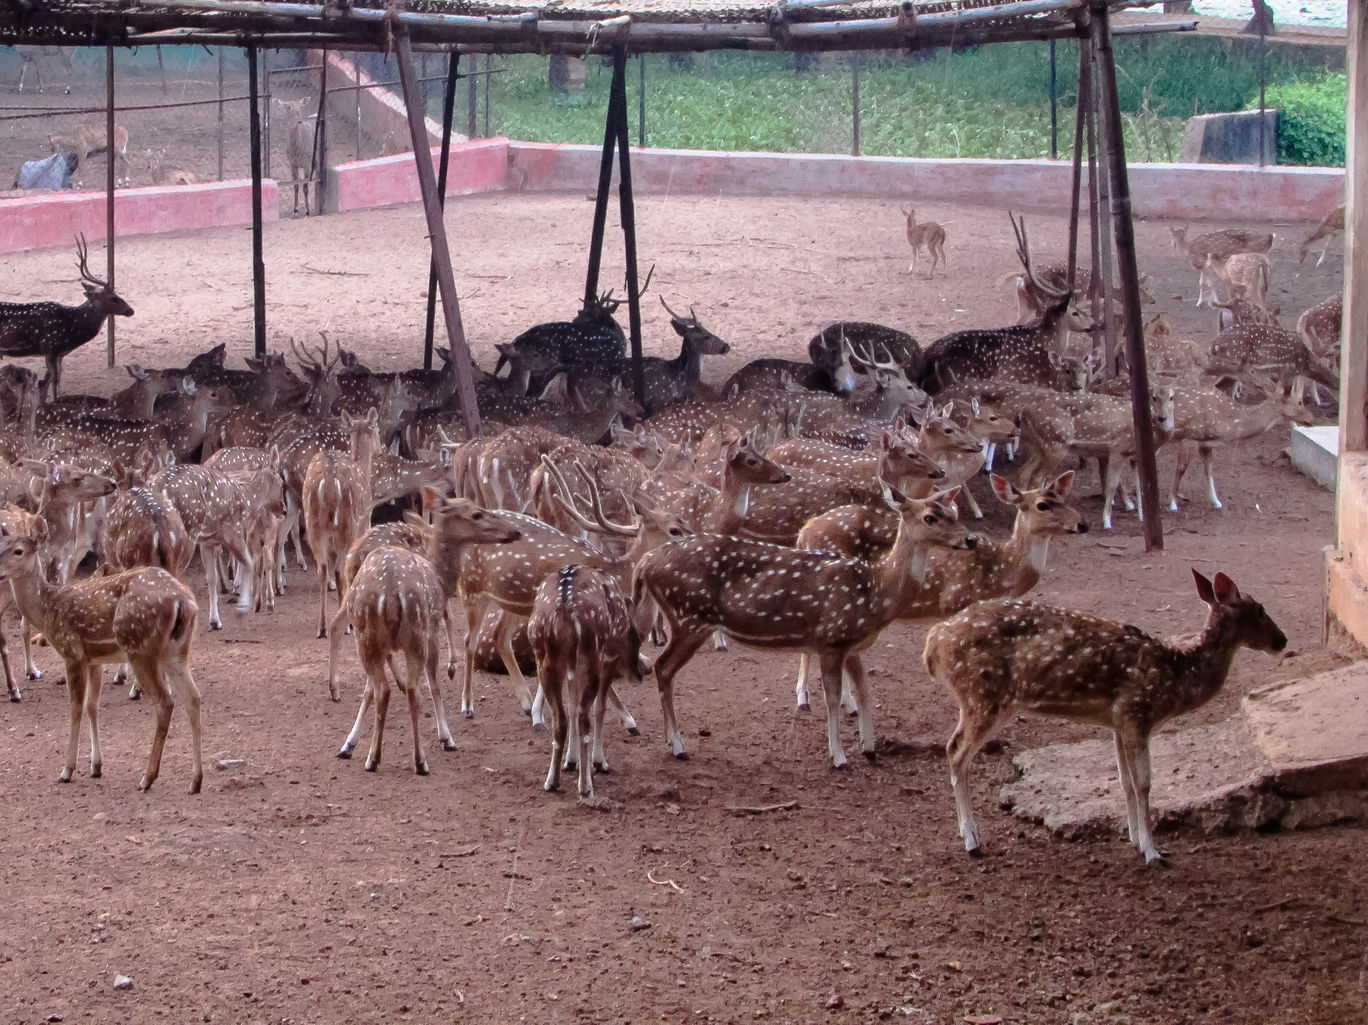 Deer at the Nandankanan zoo